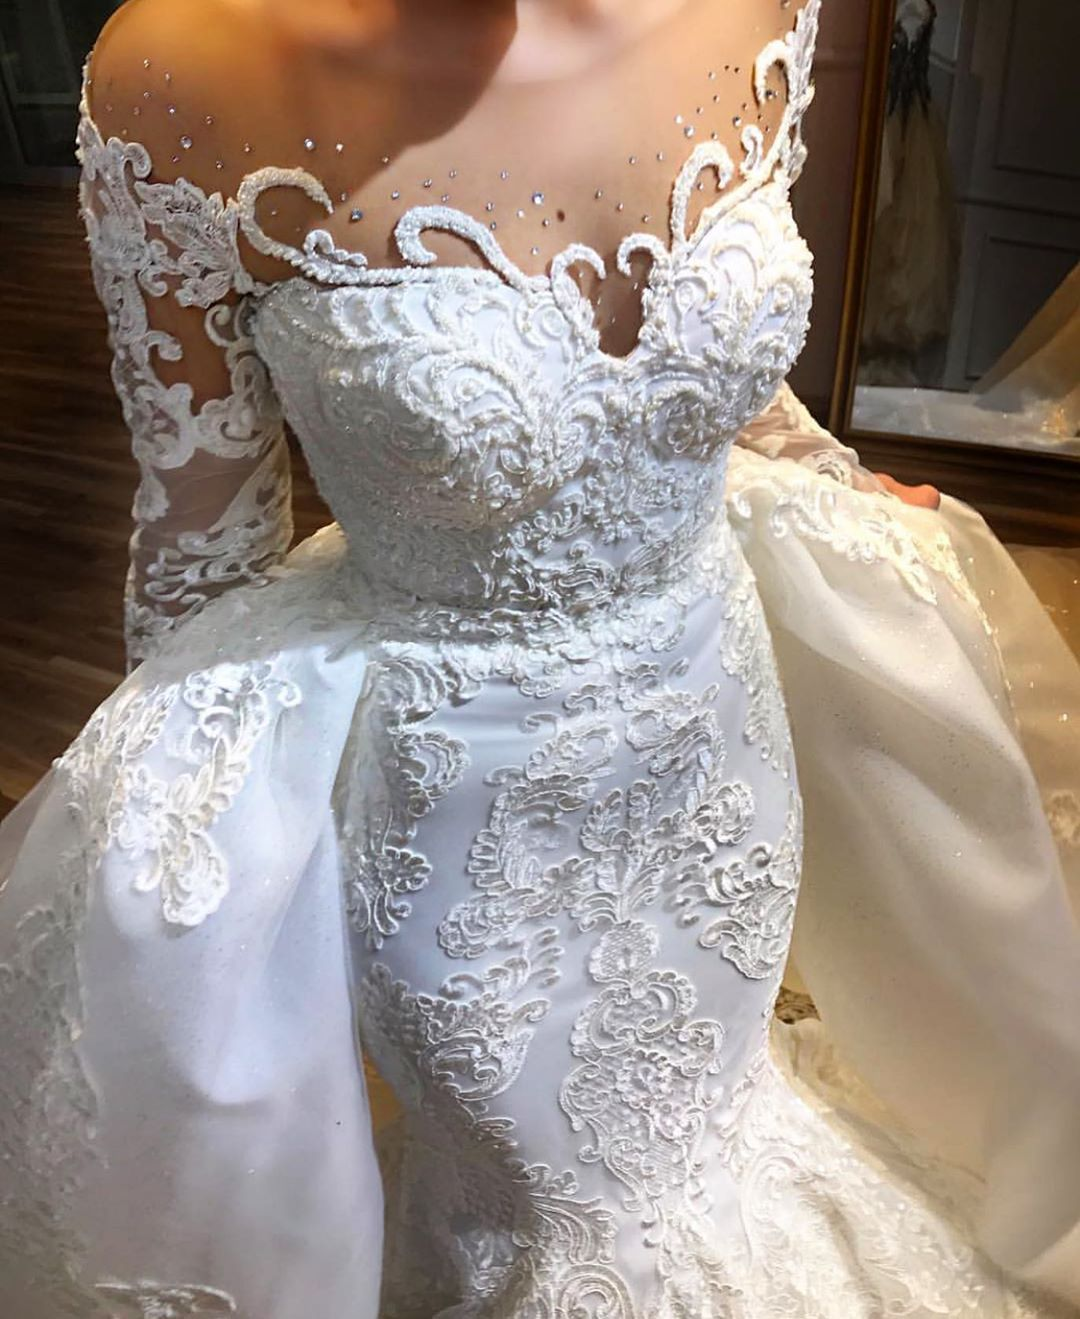 Long Sleeve Wedding Dresses Bridal Gowns With Sleeves Lace Mermaid Wedding Dress Long Sleeve Mermaid Wedding Dress Sparkle Wedding Dress [ 1319 x 1080 Pixel ]